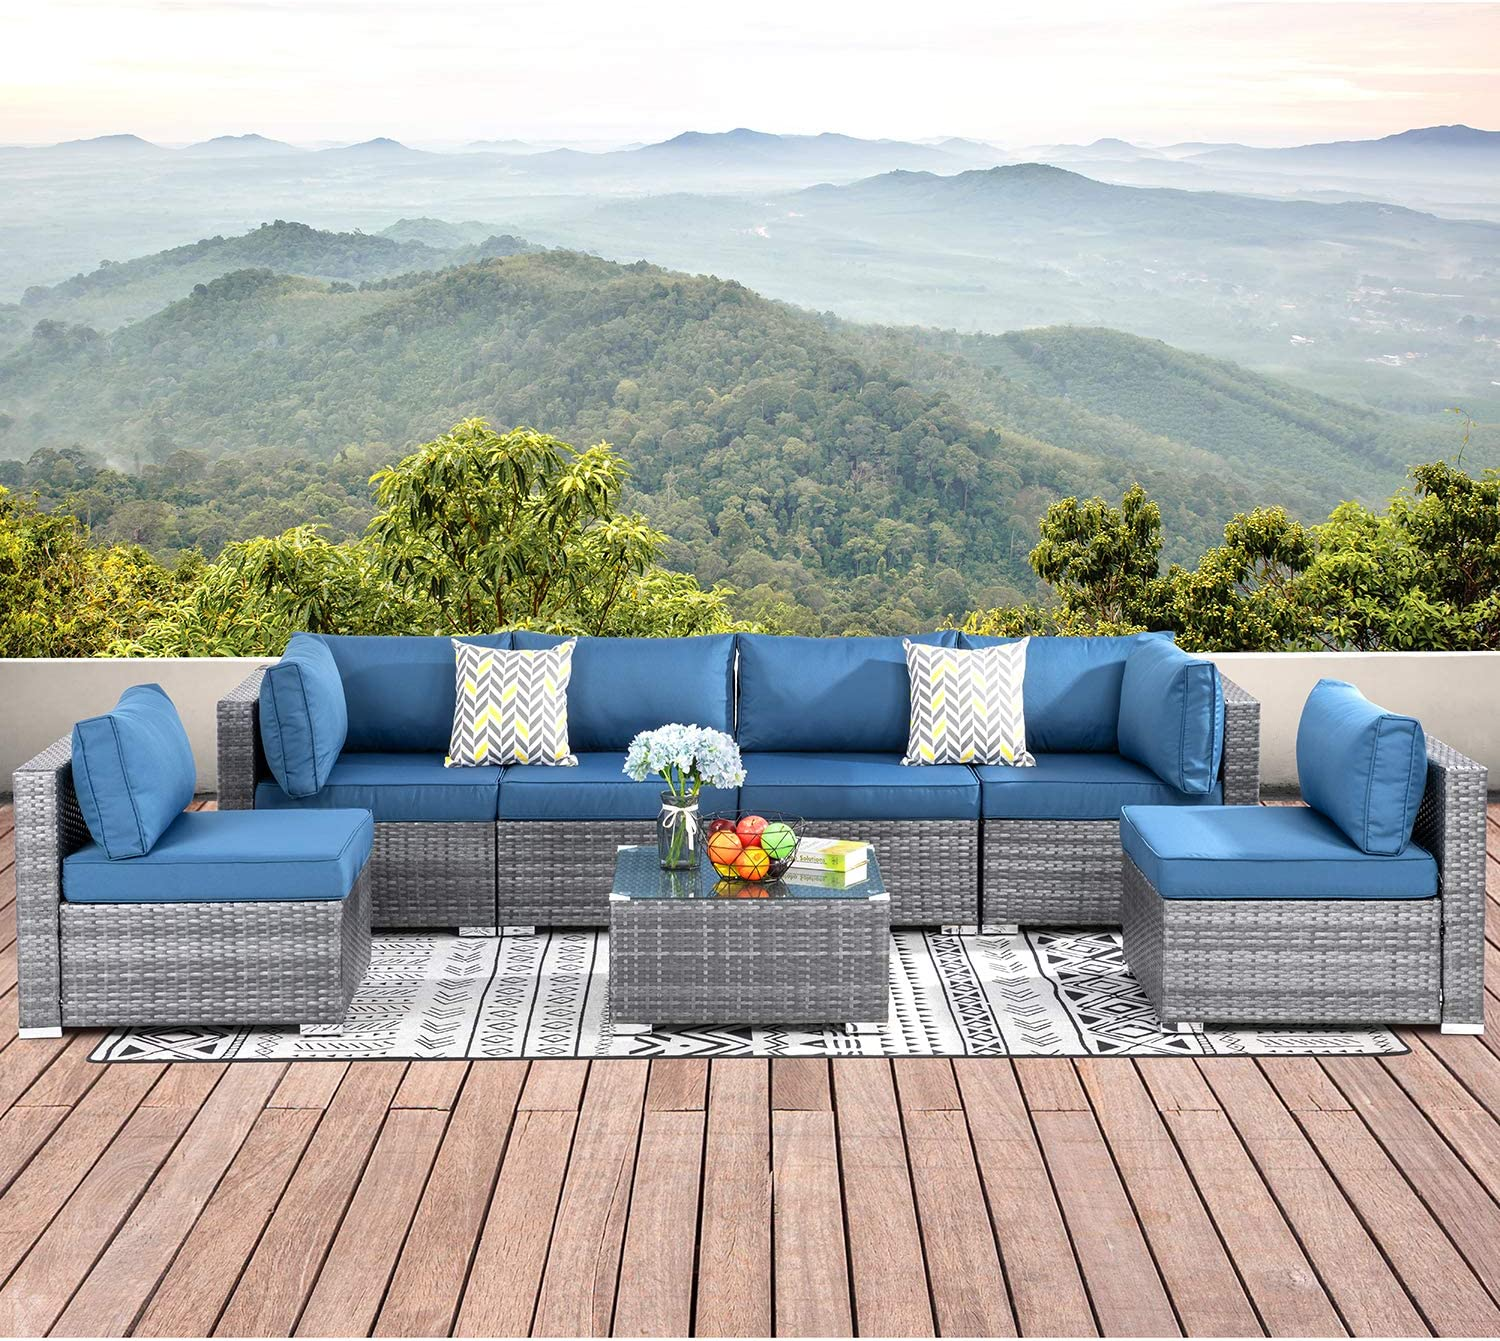 SUNLEI 7pcs Patio Outdoor Furniture Sets Conversation Set,Low Back All-Weather Rattan Sectional Sofa with Tea Table&Washable Couch Cushions(Silver Rattan)(Aegean Blue)